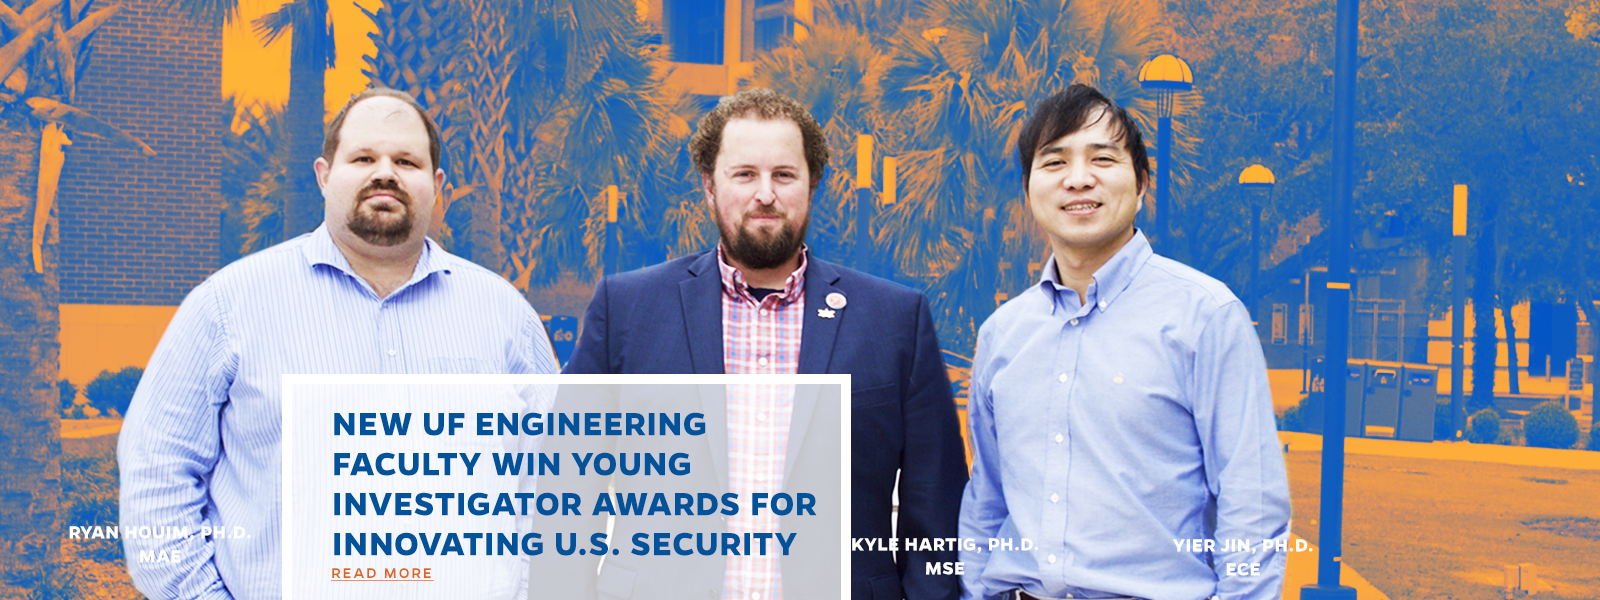 New UF Engineering Faculty Win Young Investigator Awards For Innovating U.S. Security